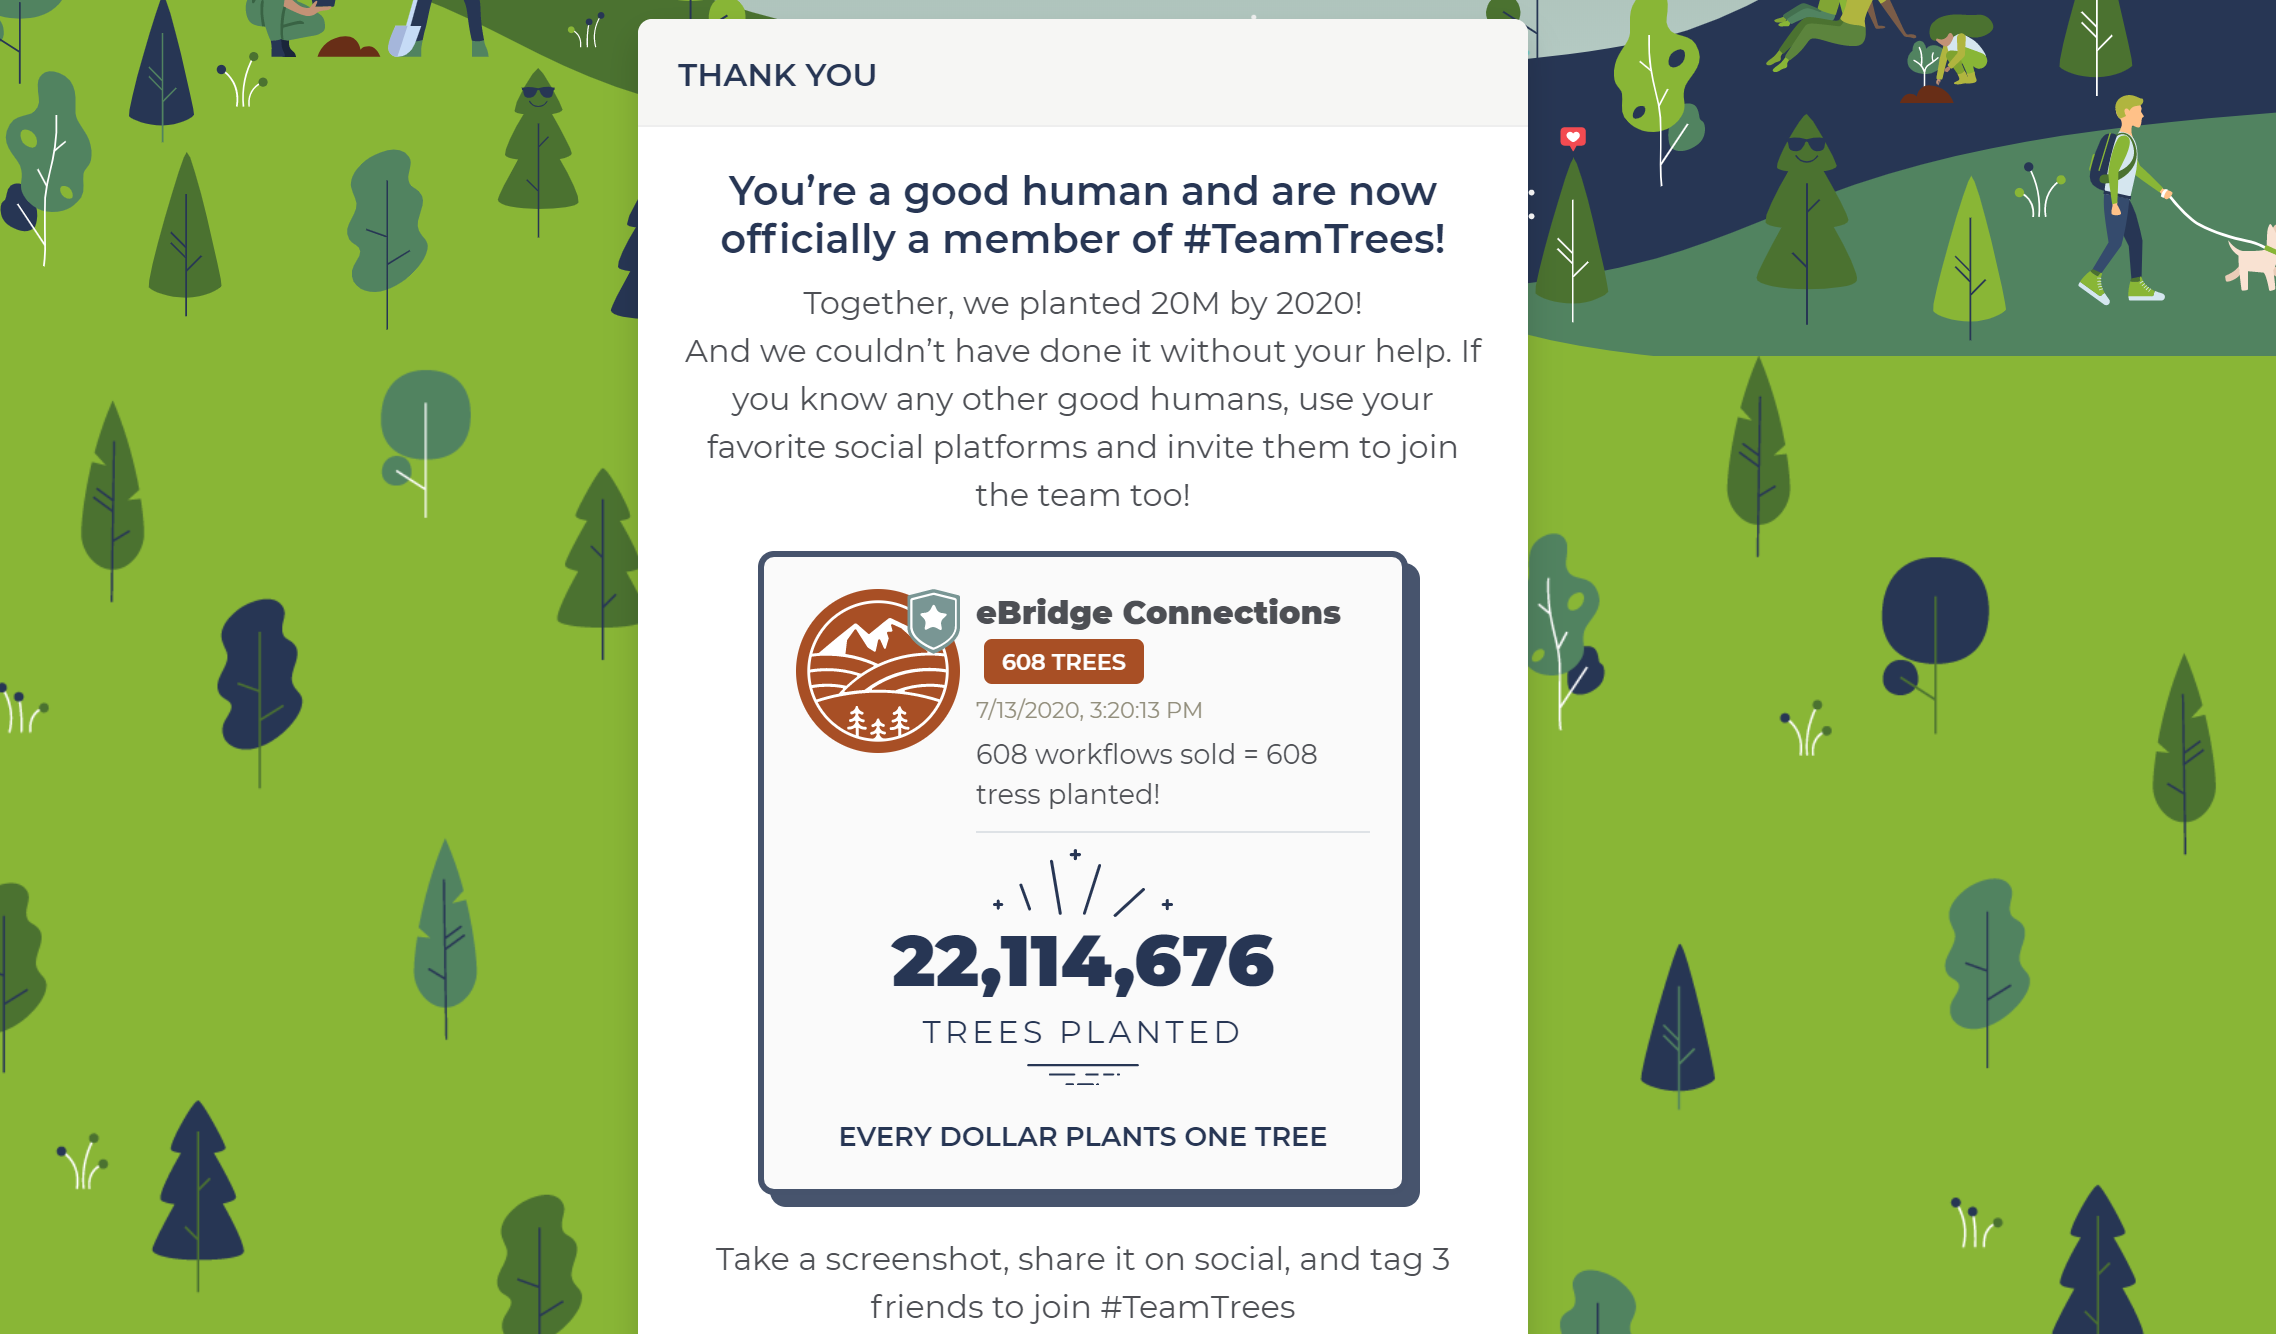 #TeamTrees Sustainability Initative